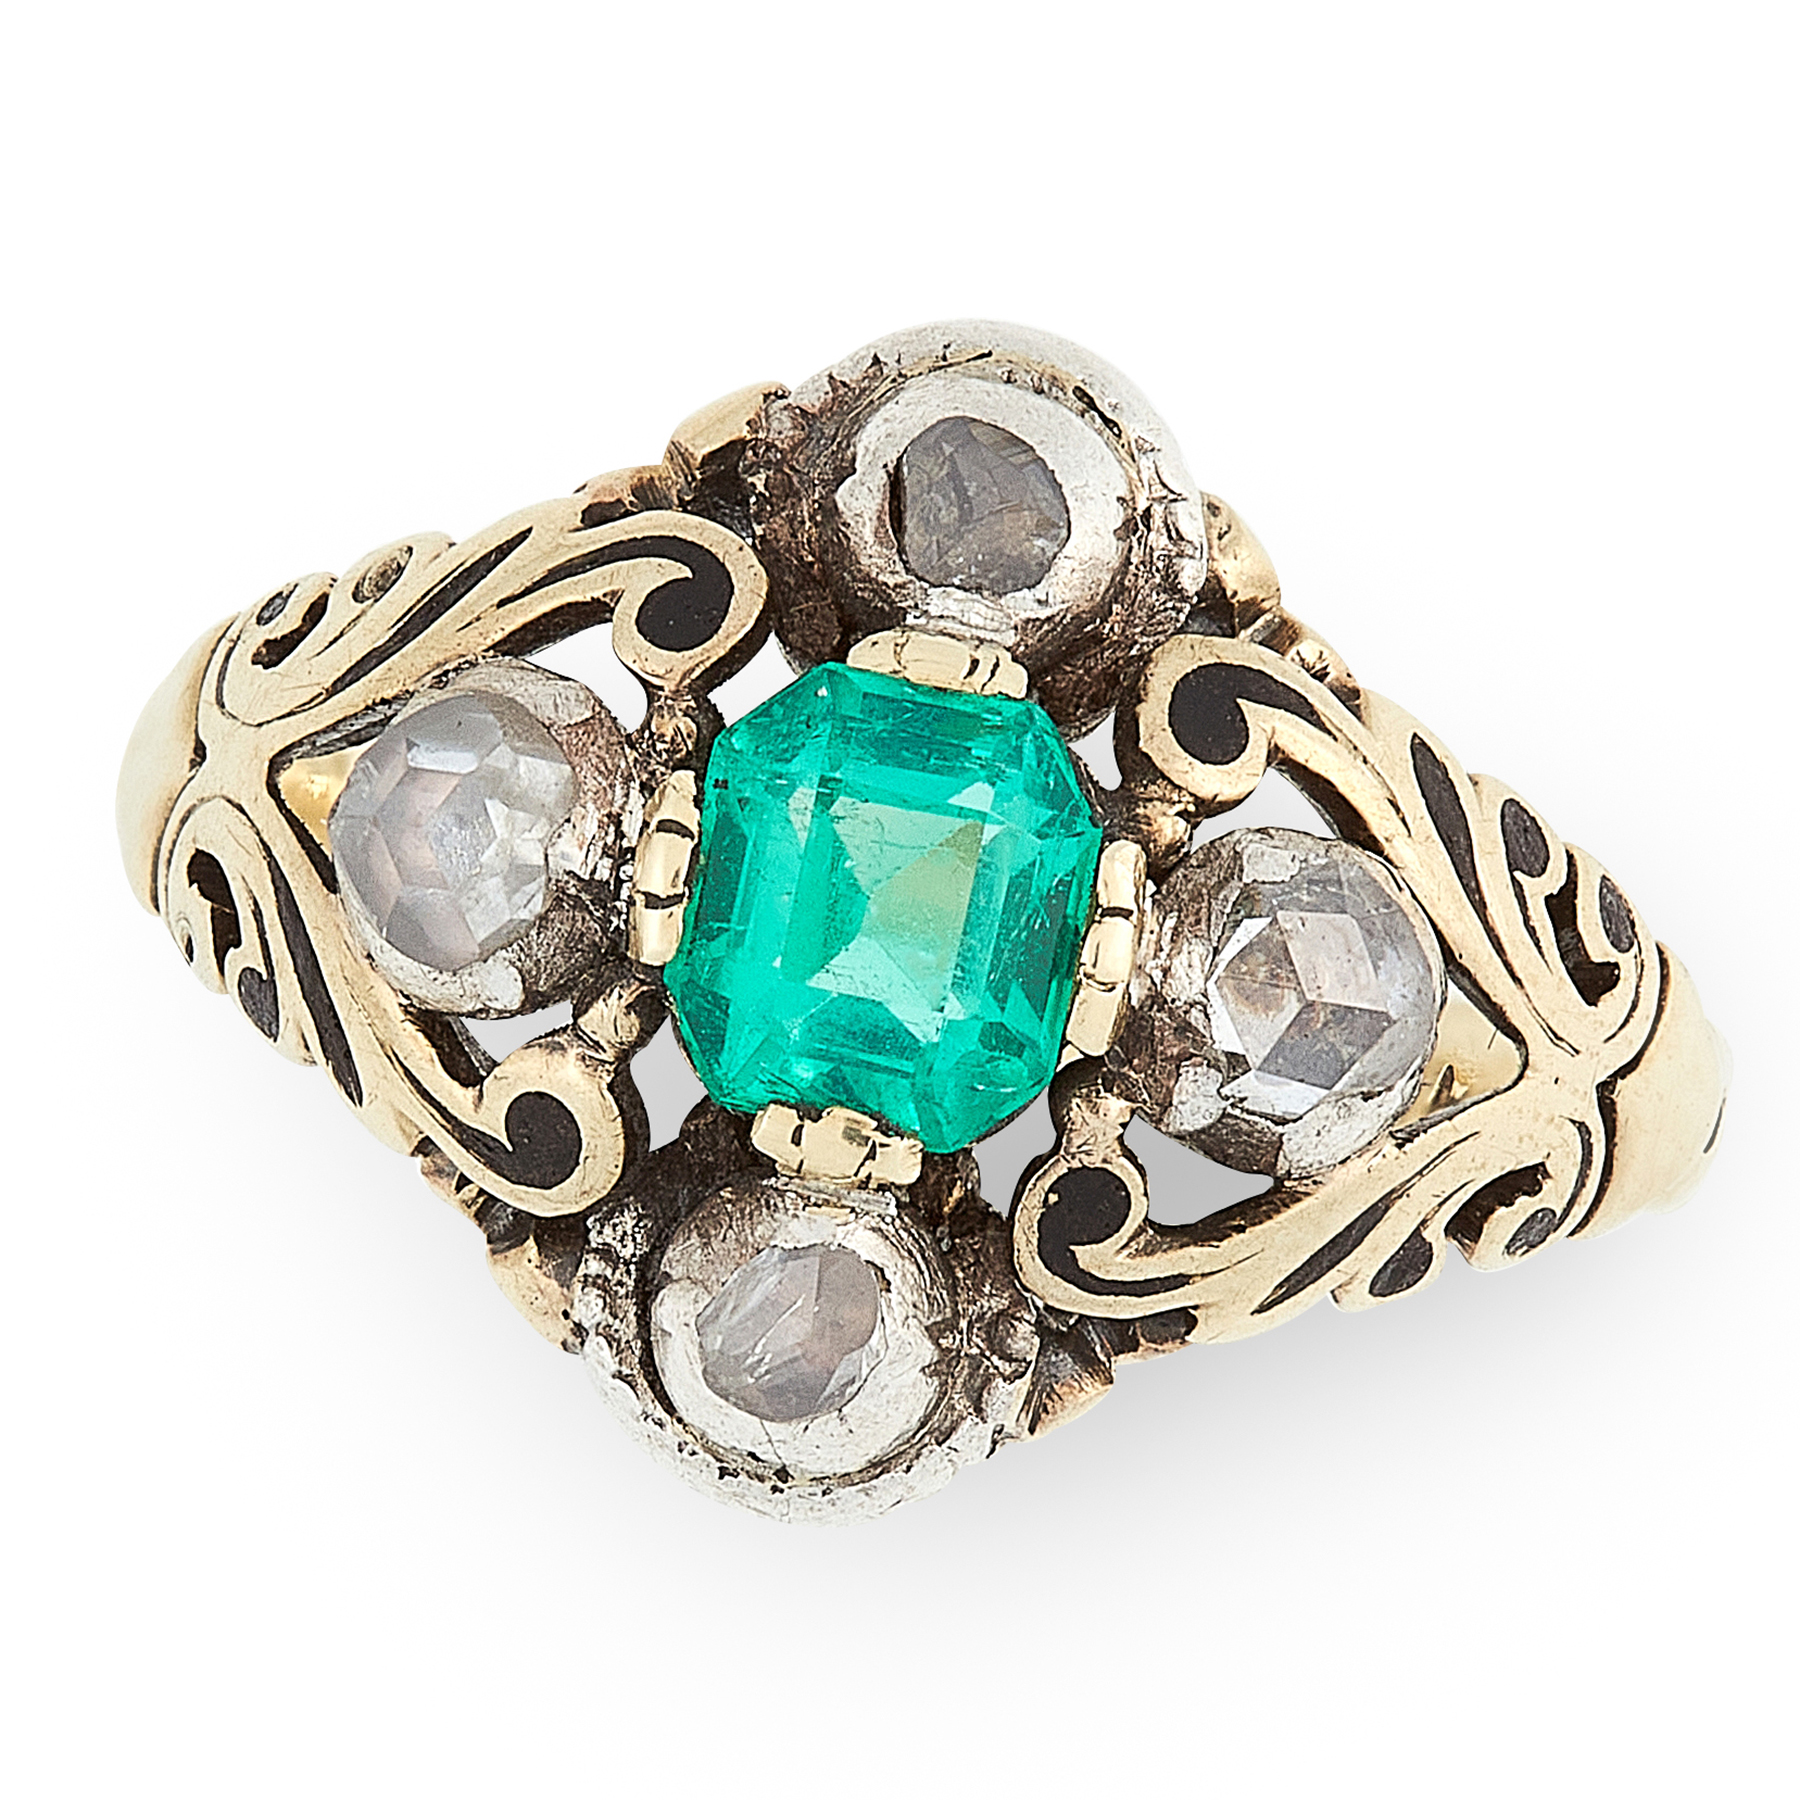 AN ANTIQUE EMERALD AND DIAMOND RING, 19TH CENTURY in yellow gold, set with an emerald cut emerald of